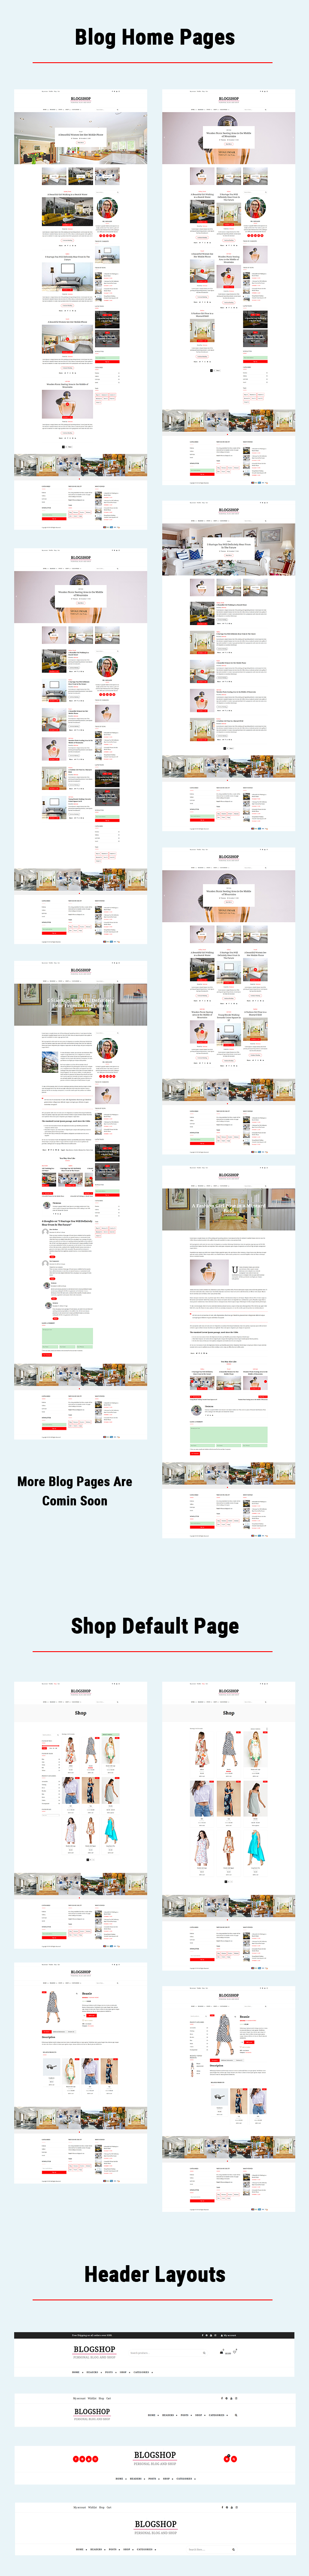 WordPress theme for Blogging and Ecommerce